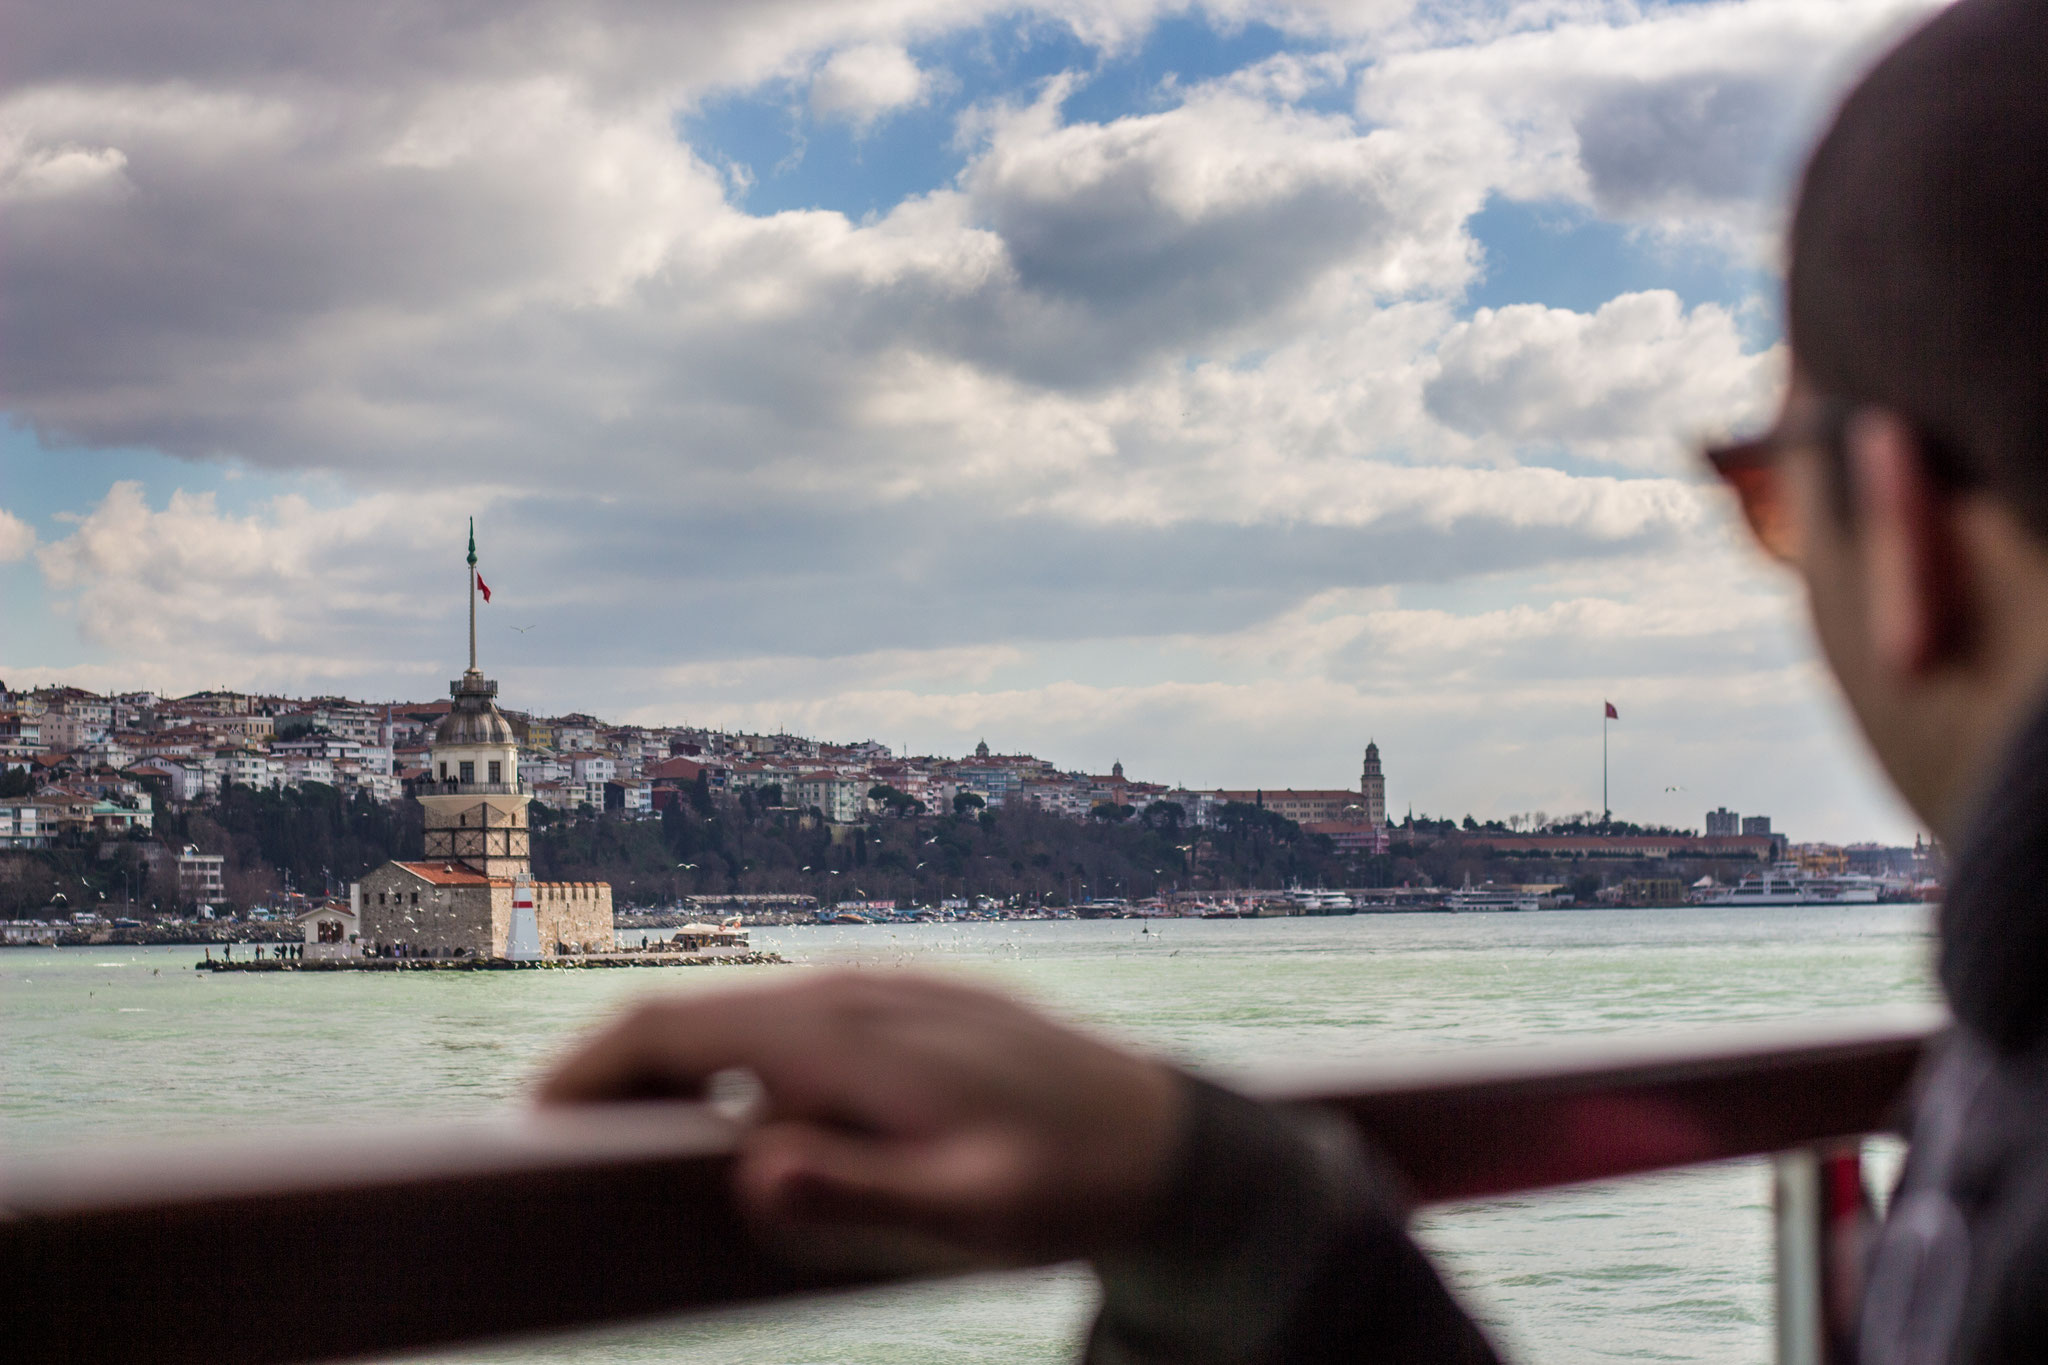 Maiden Tower and Bosporus, Istanbul. March 2016.